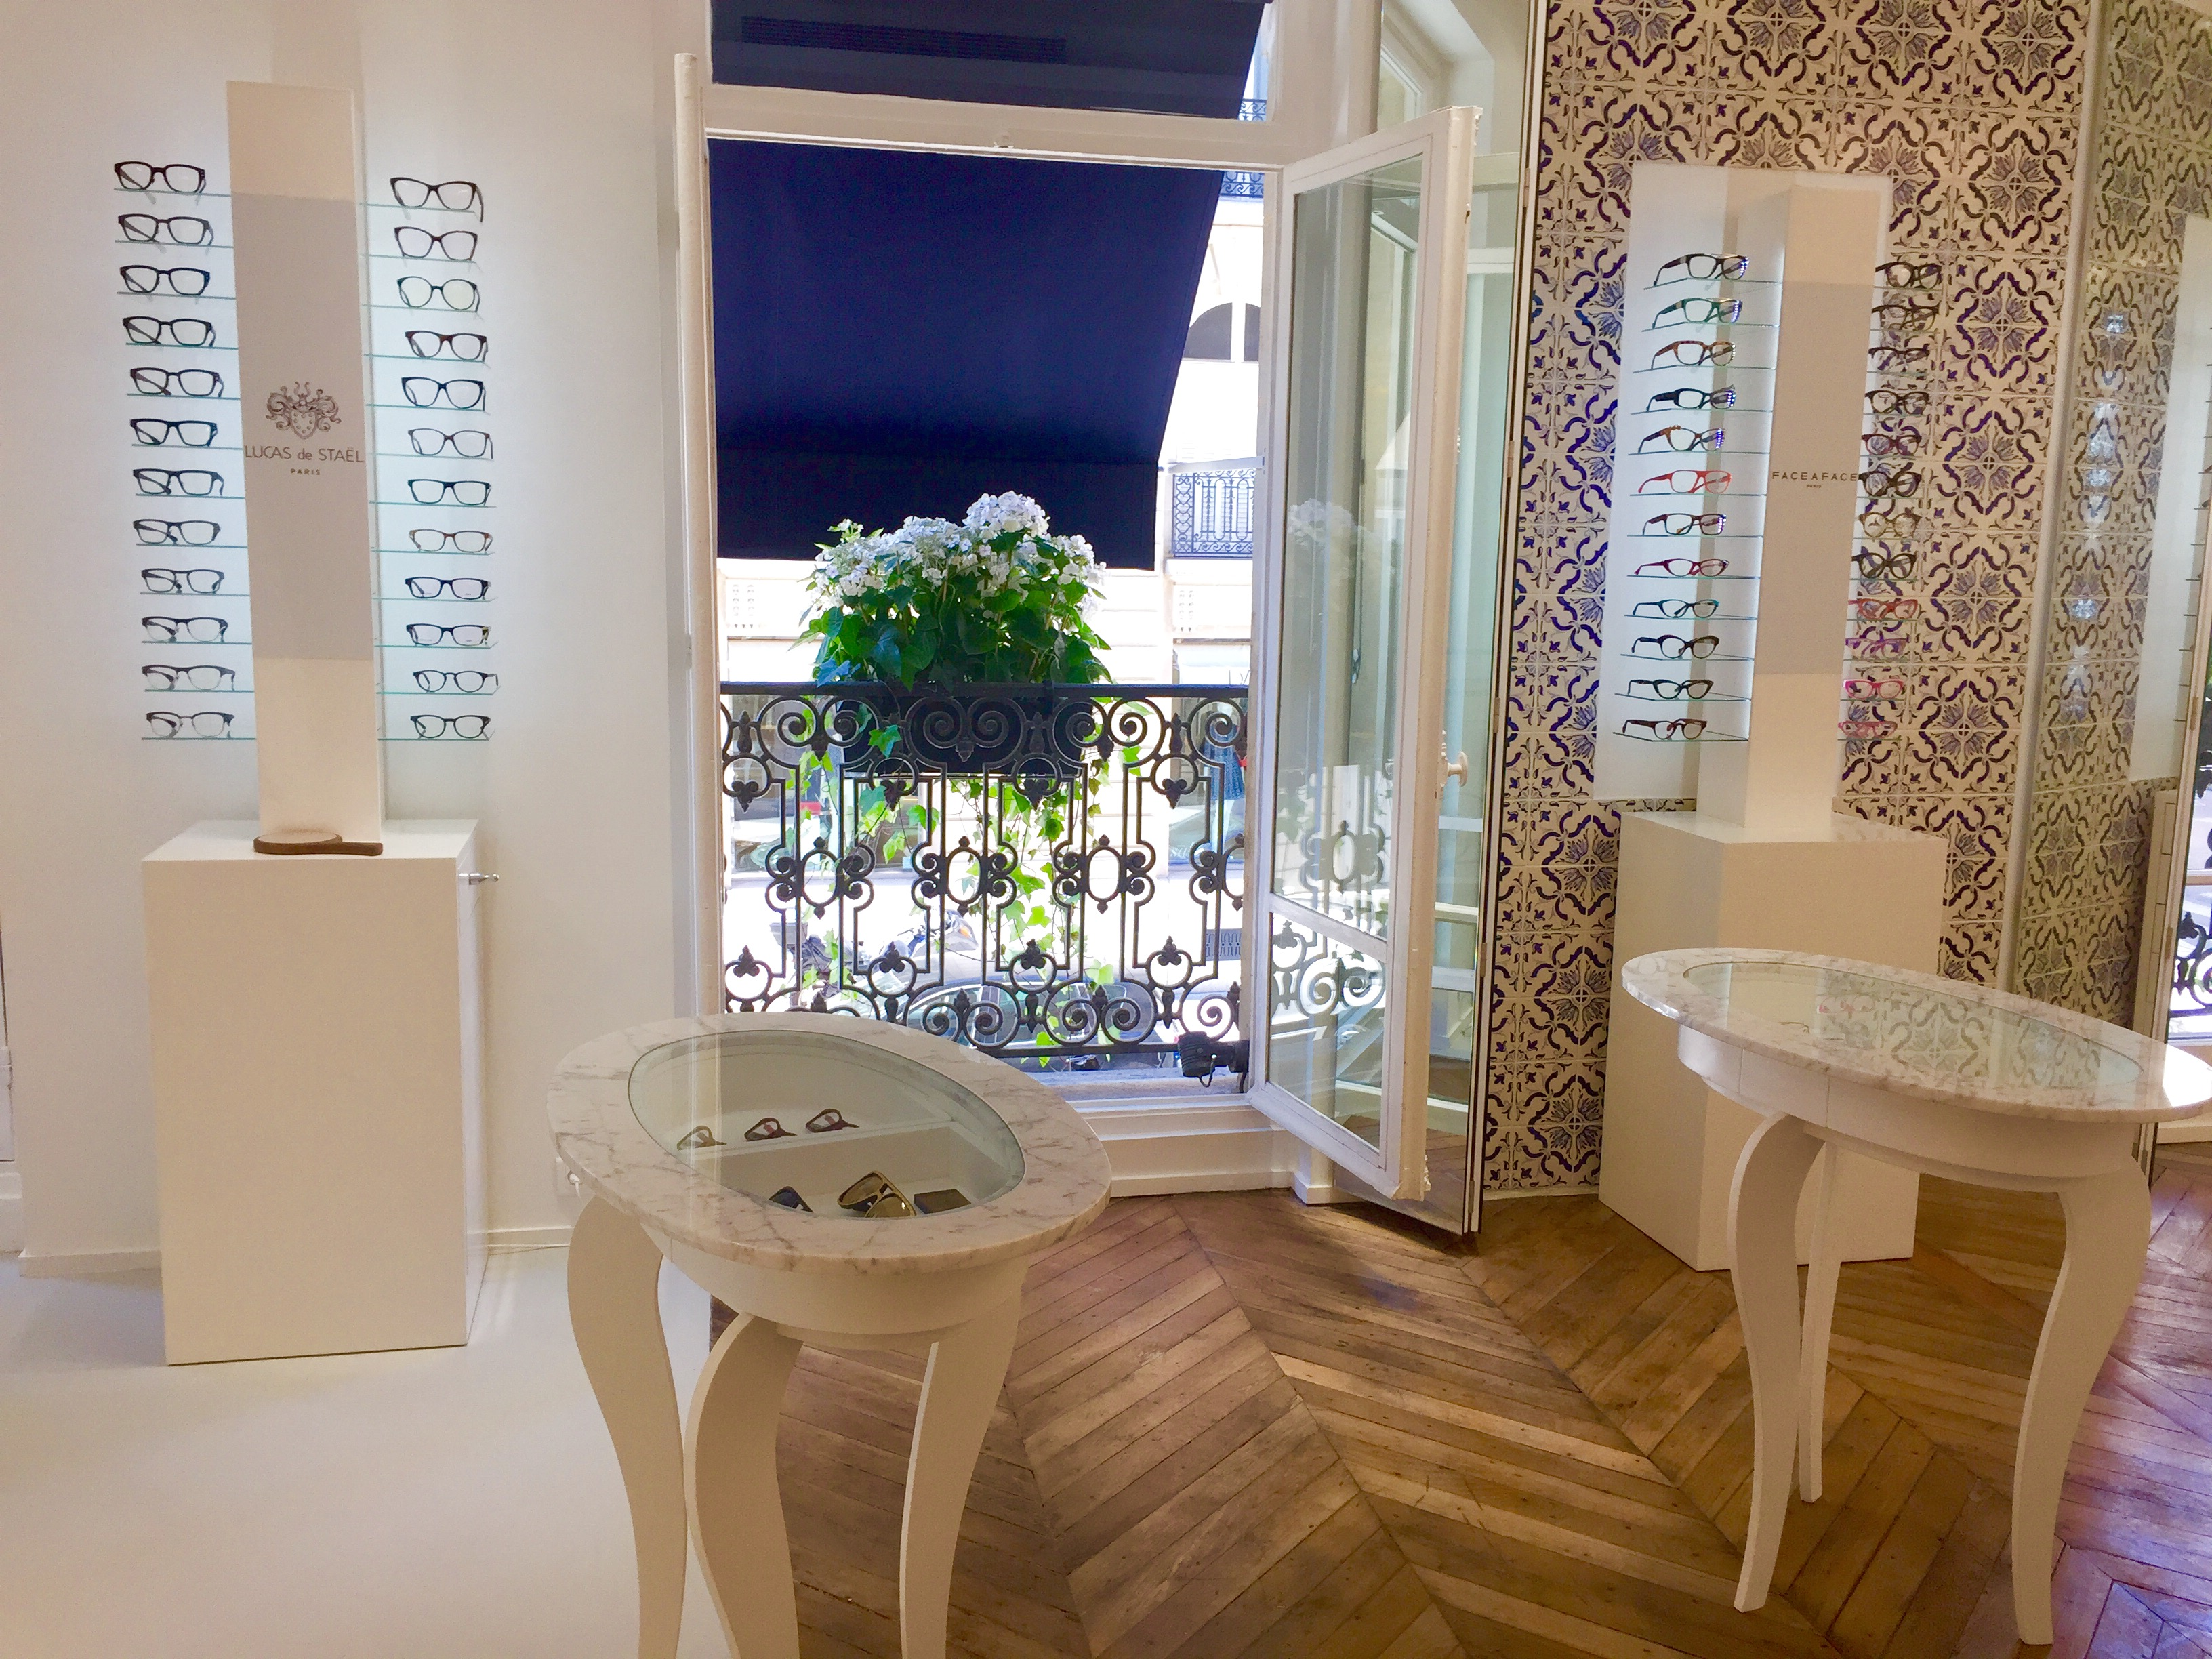 Fenetre Premier Etage Boutique The House of Eyewear Opticien Paris